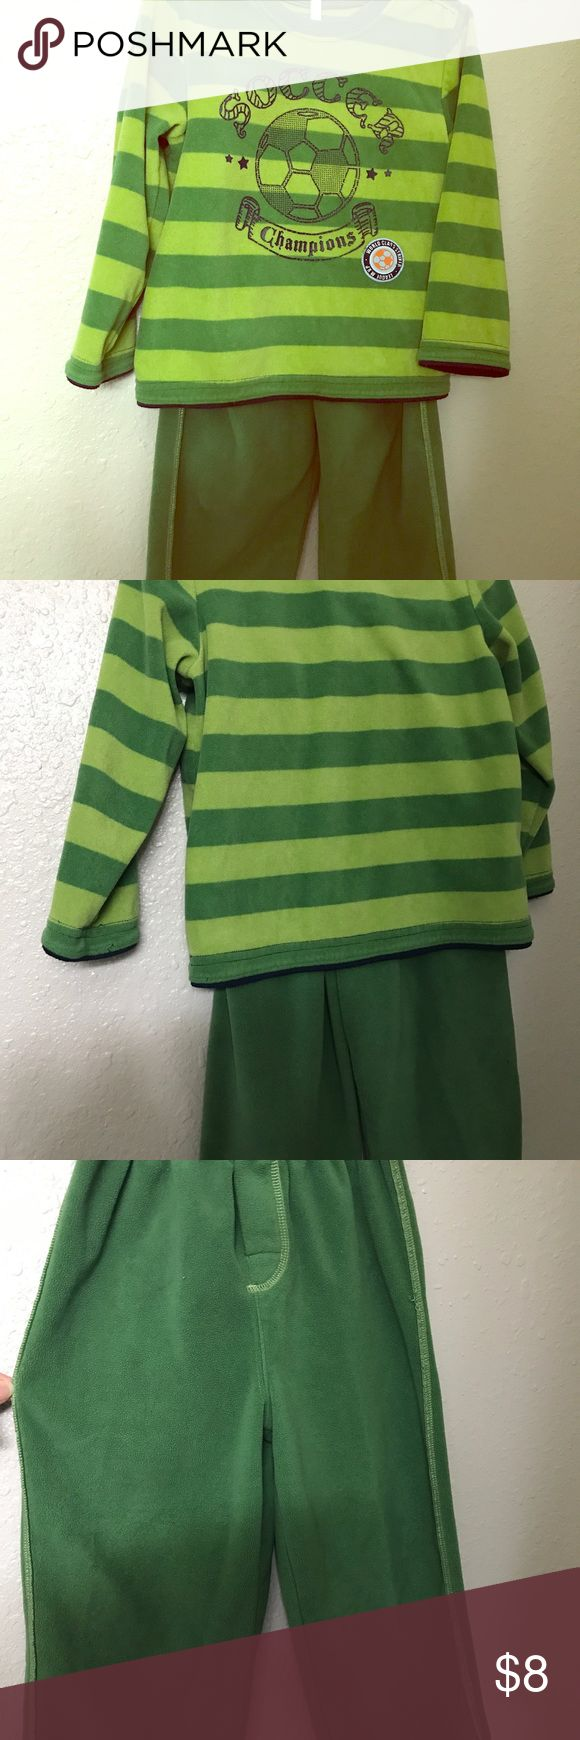 3t green sweatpants and top set. In great conditions! Carter's Matching Sets